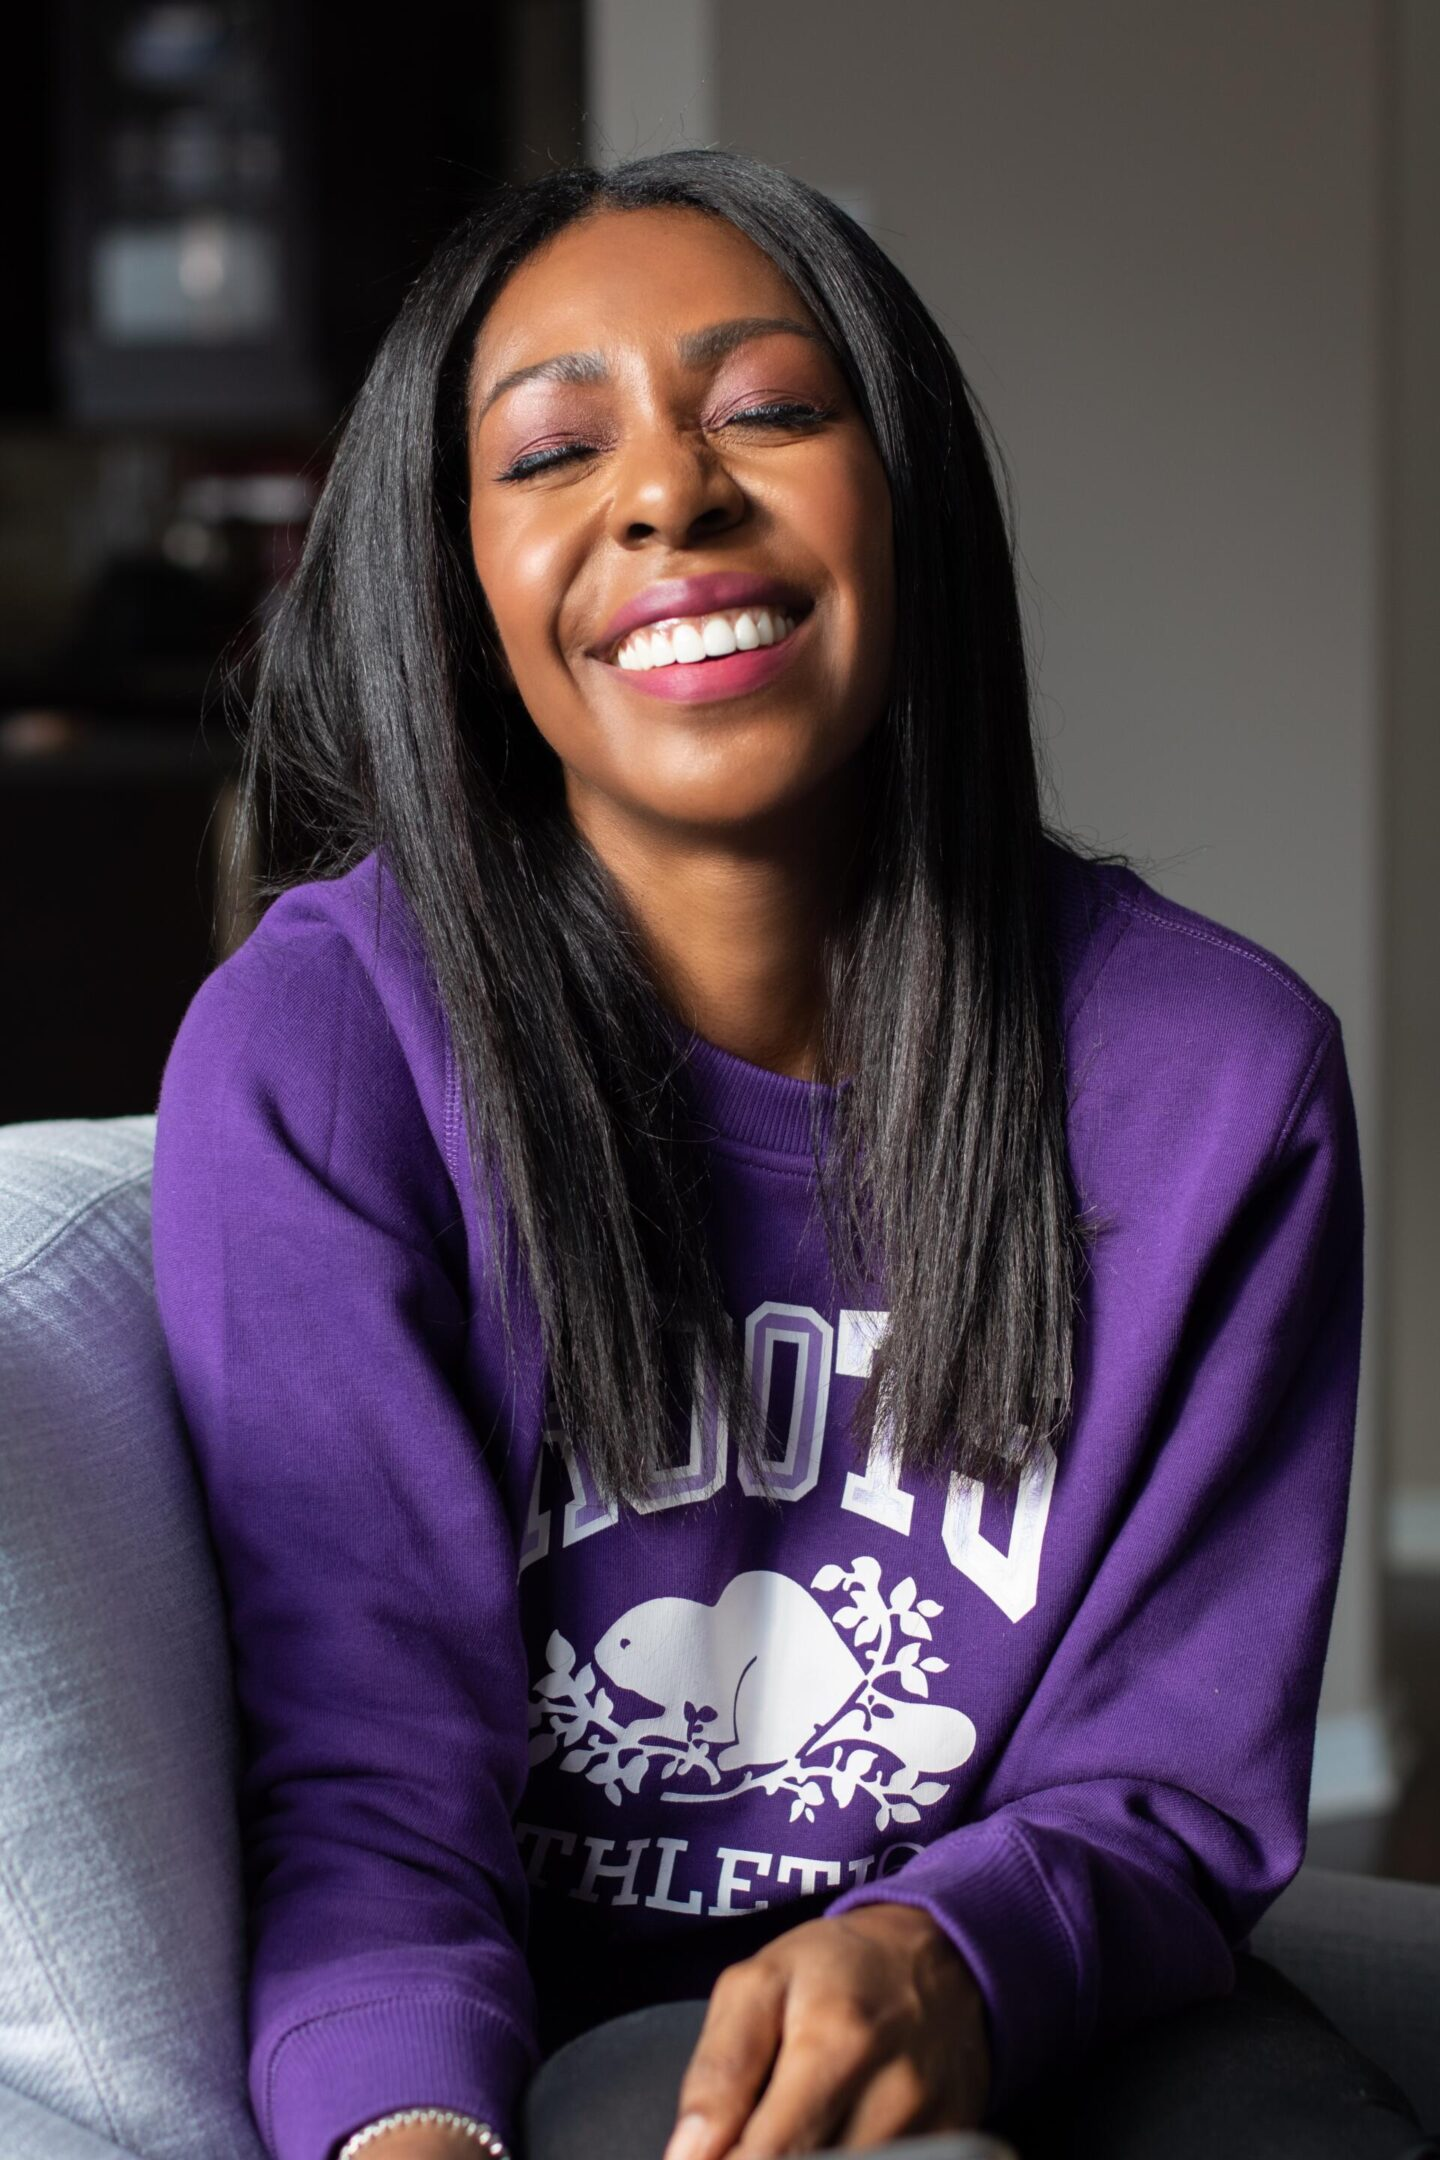 Dominique Baker smiling in a Roots sweatshirt